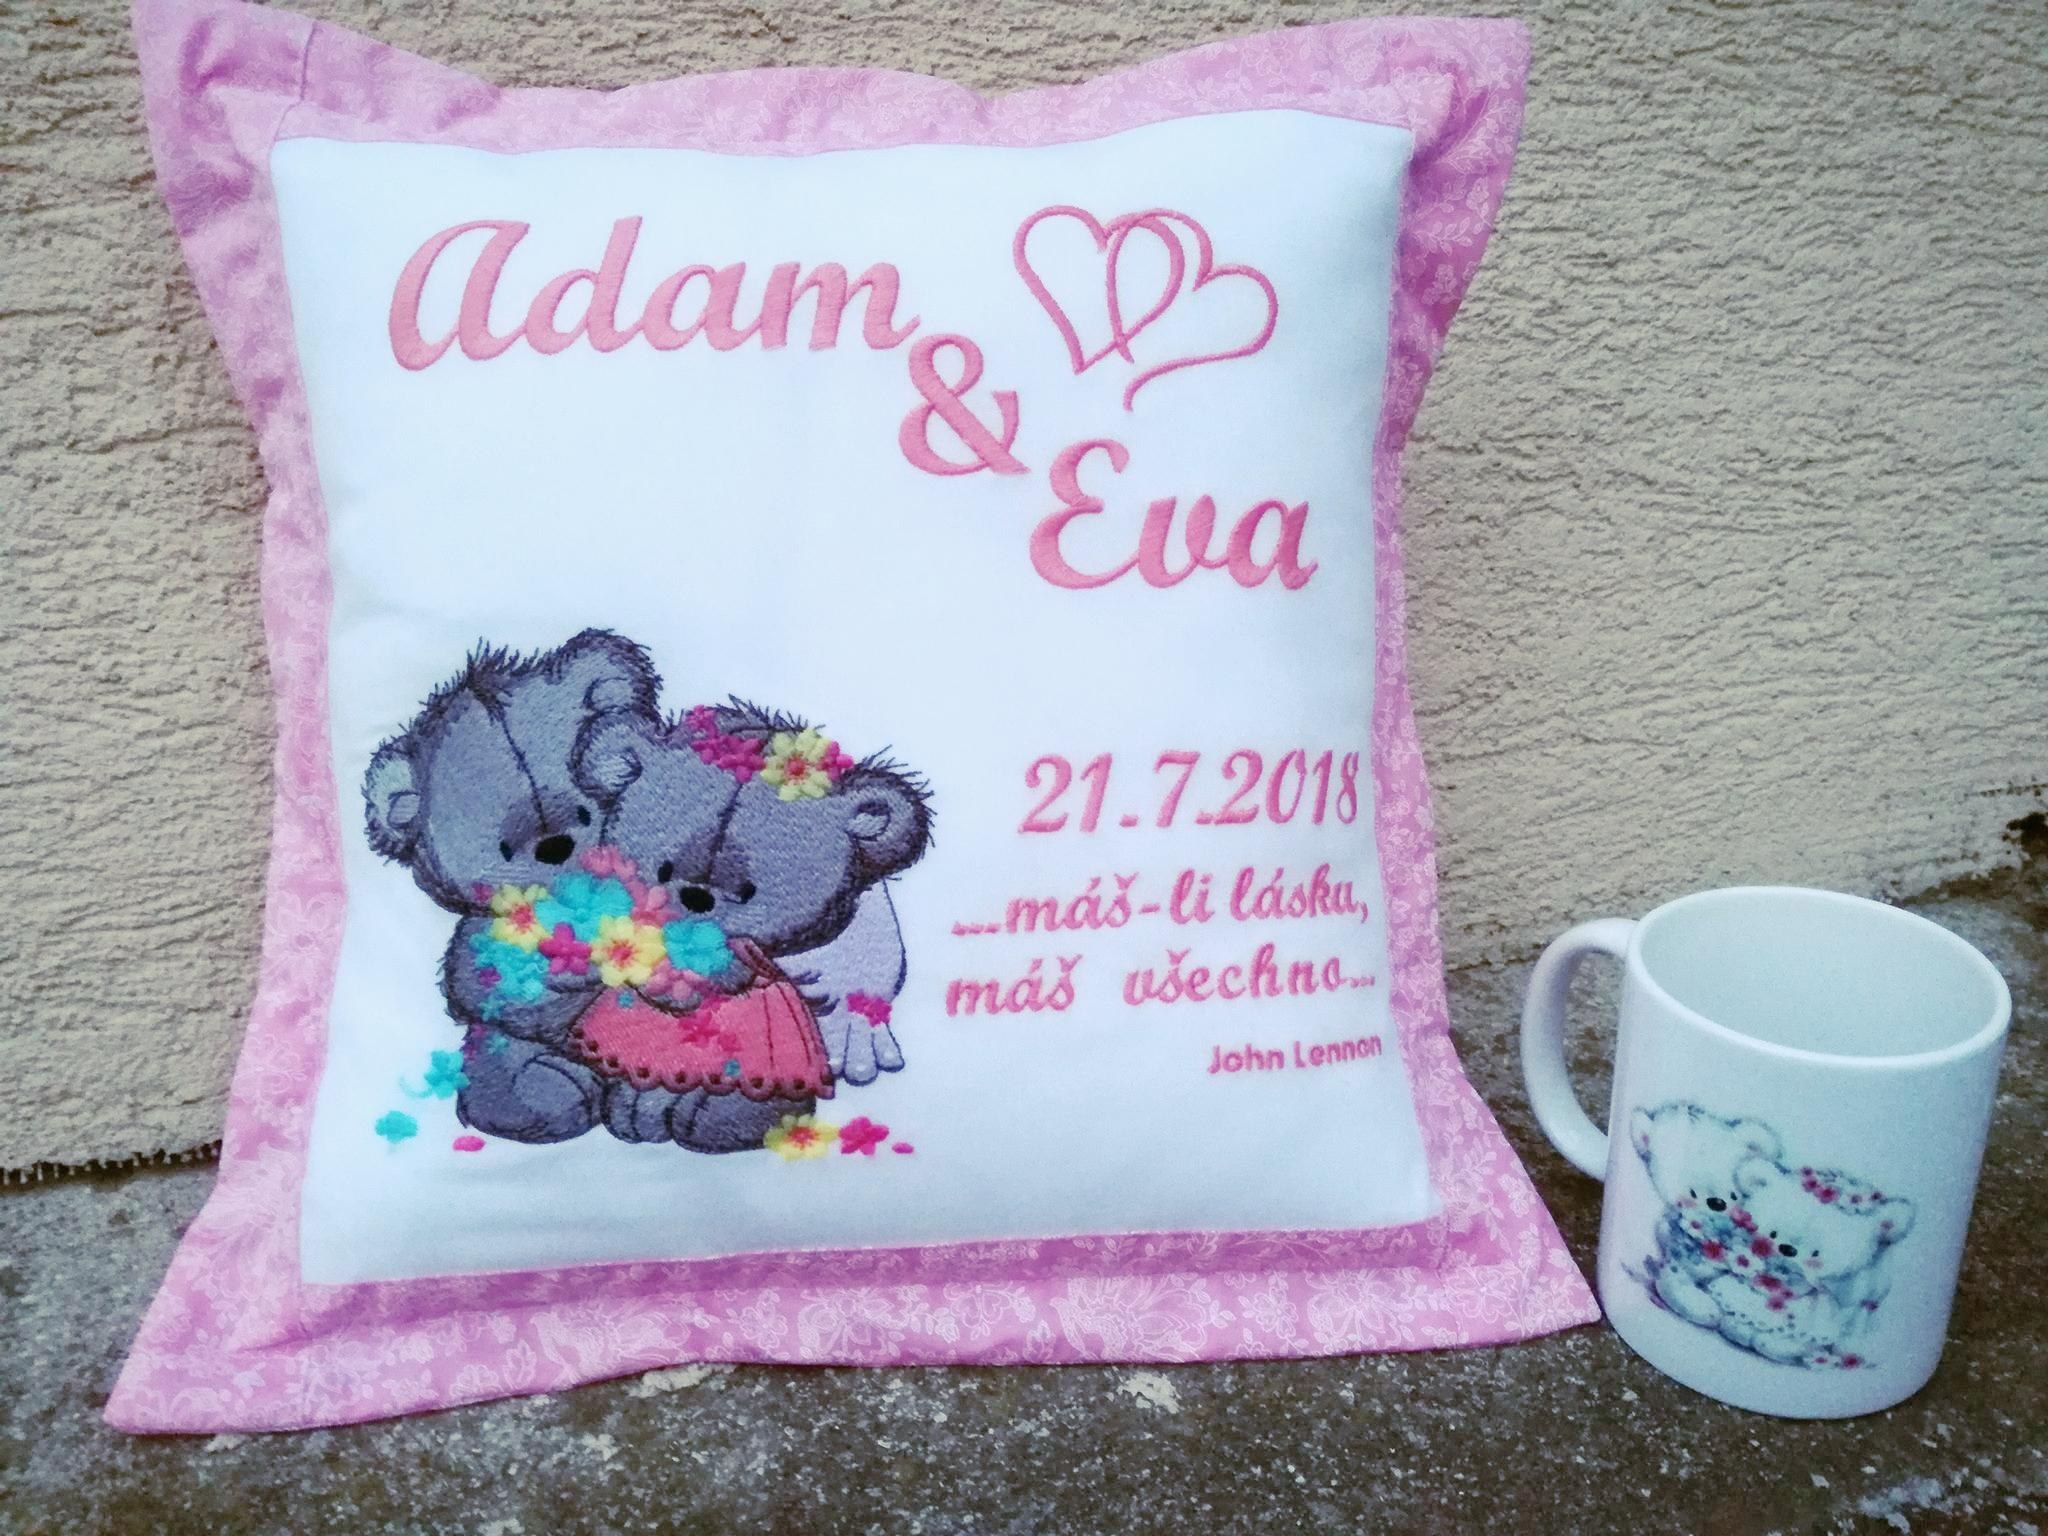 Embroidered cushion with Teddy bears wedding design